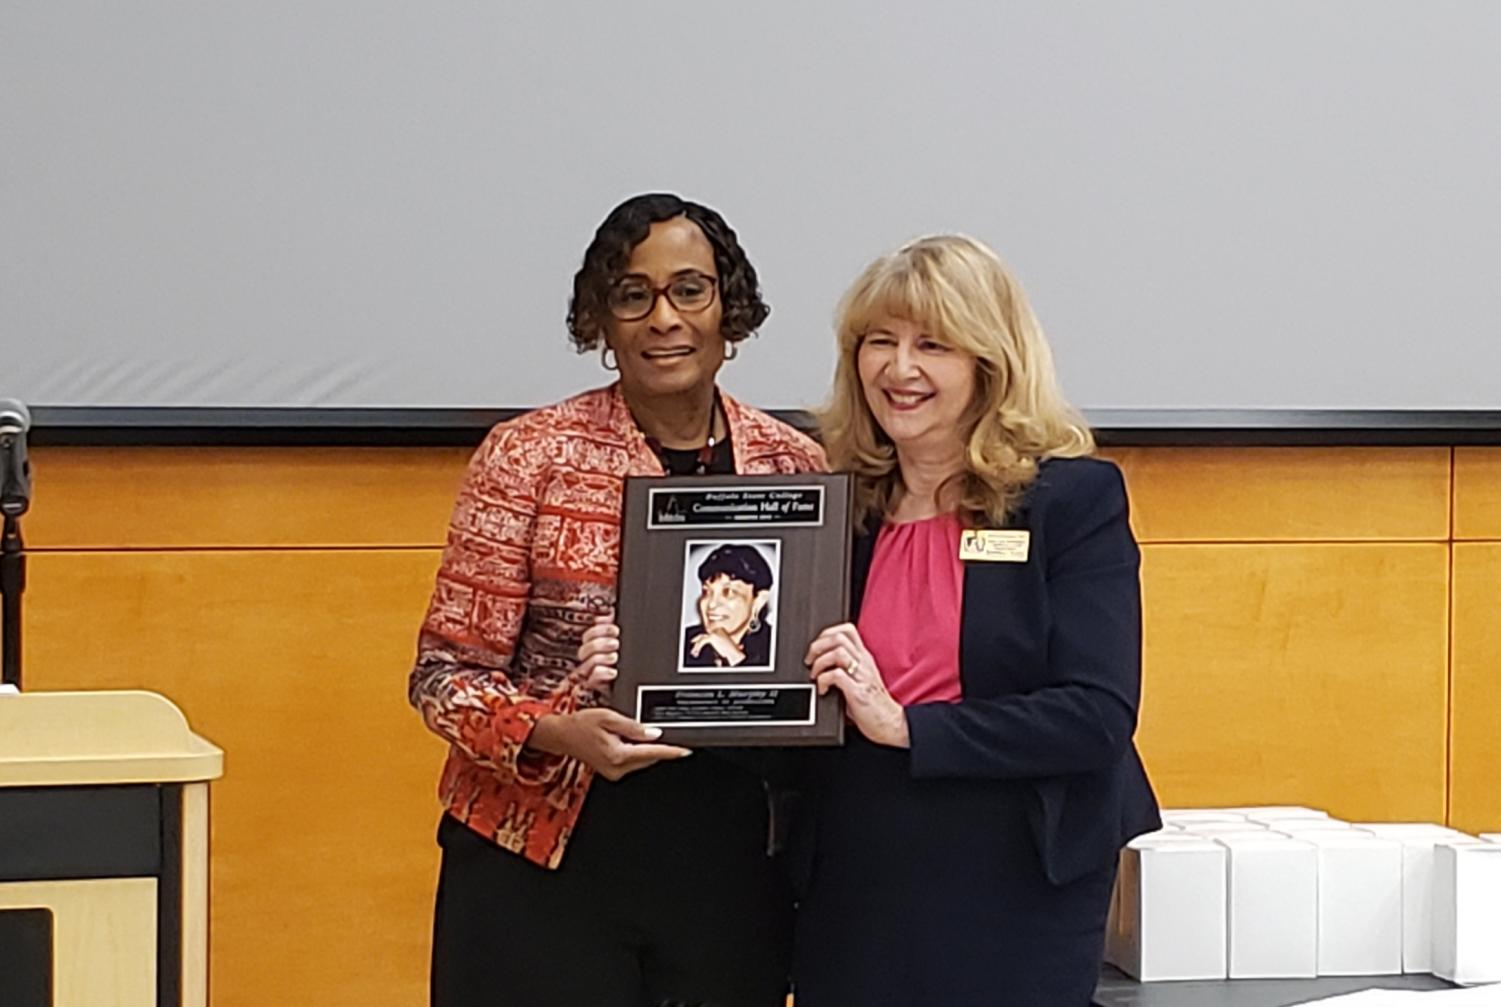 Dr. Toni Draper, daughter of Frances L. Murphy, accepts her mother's posthumous the induction into the Communcation Deaprtment Hall of Fame from chair Dr. Deborah A. Silverman.